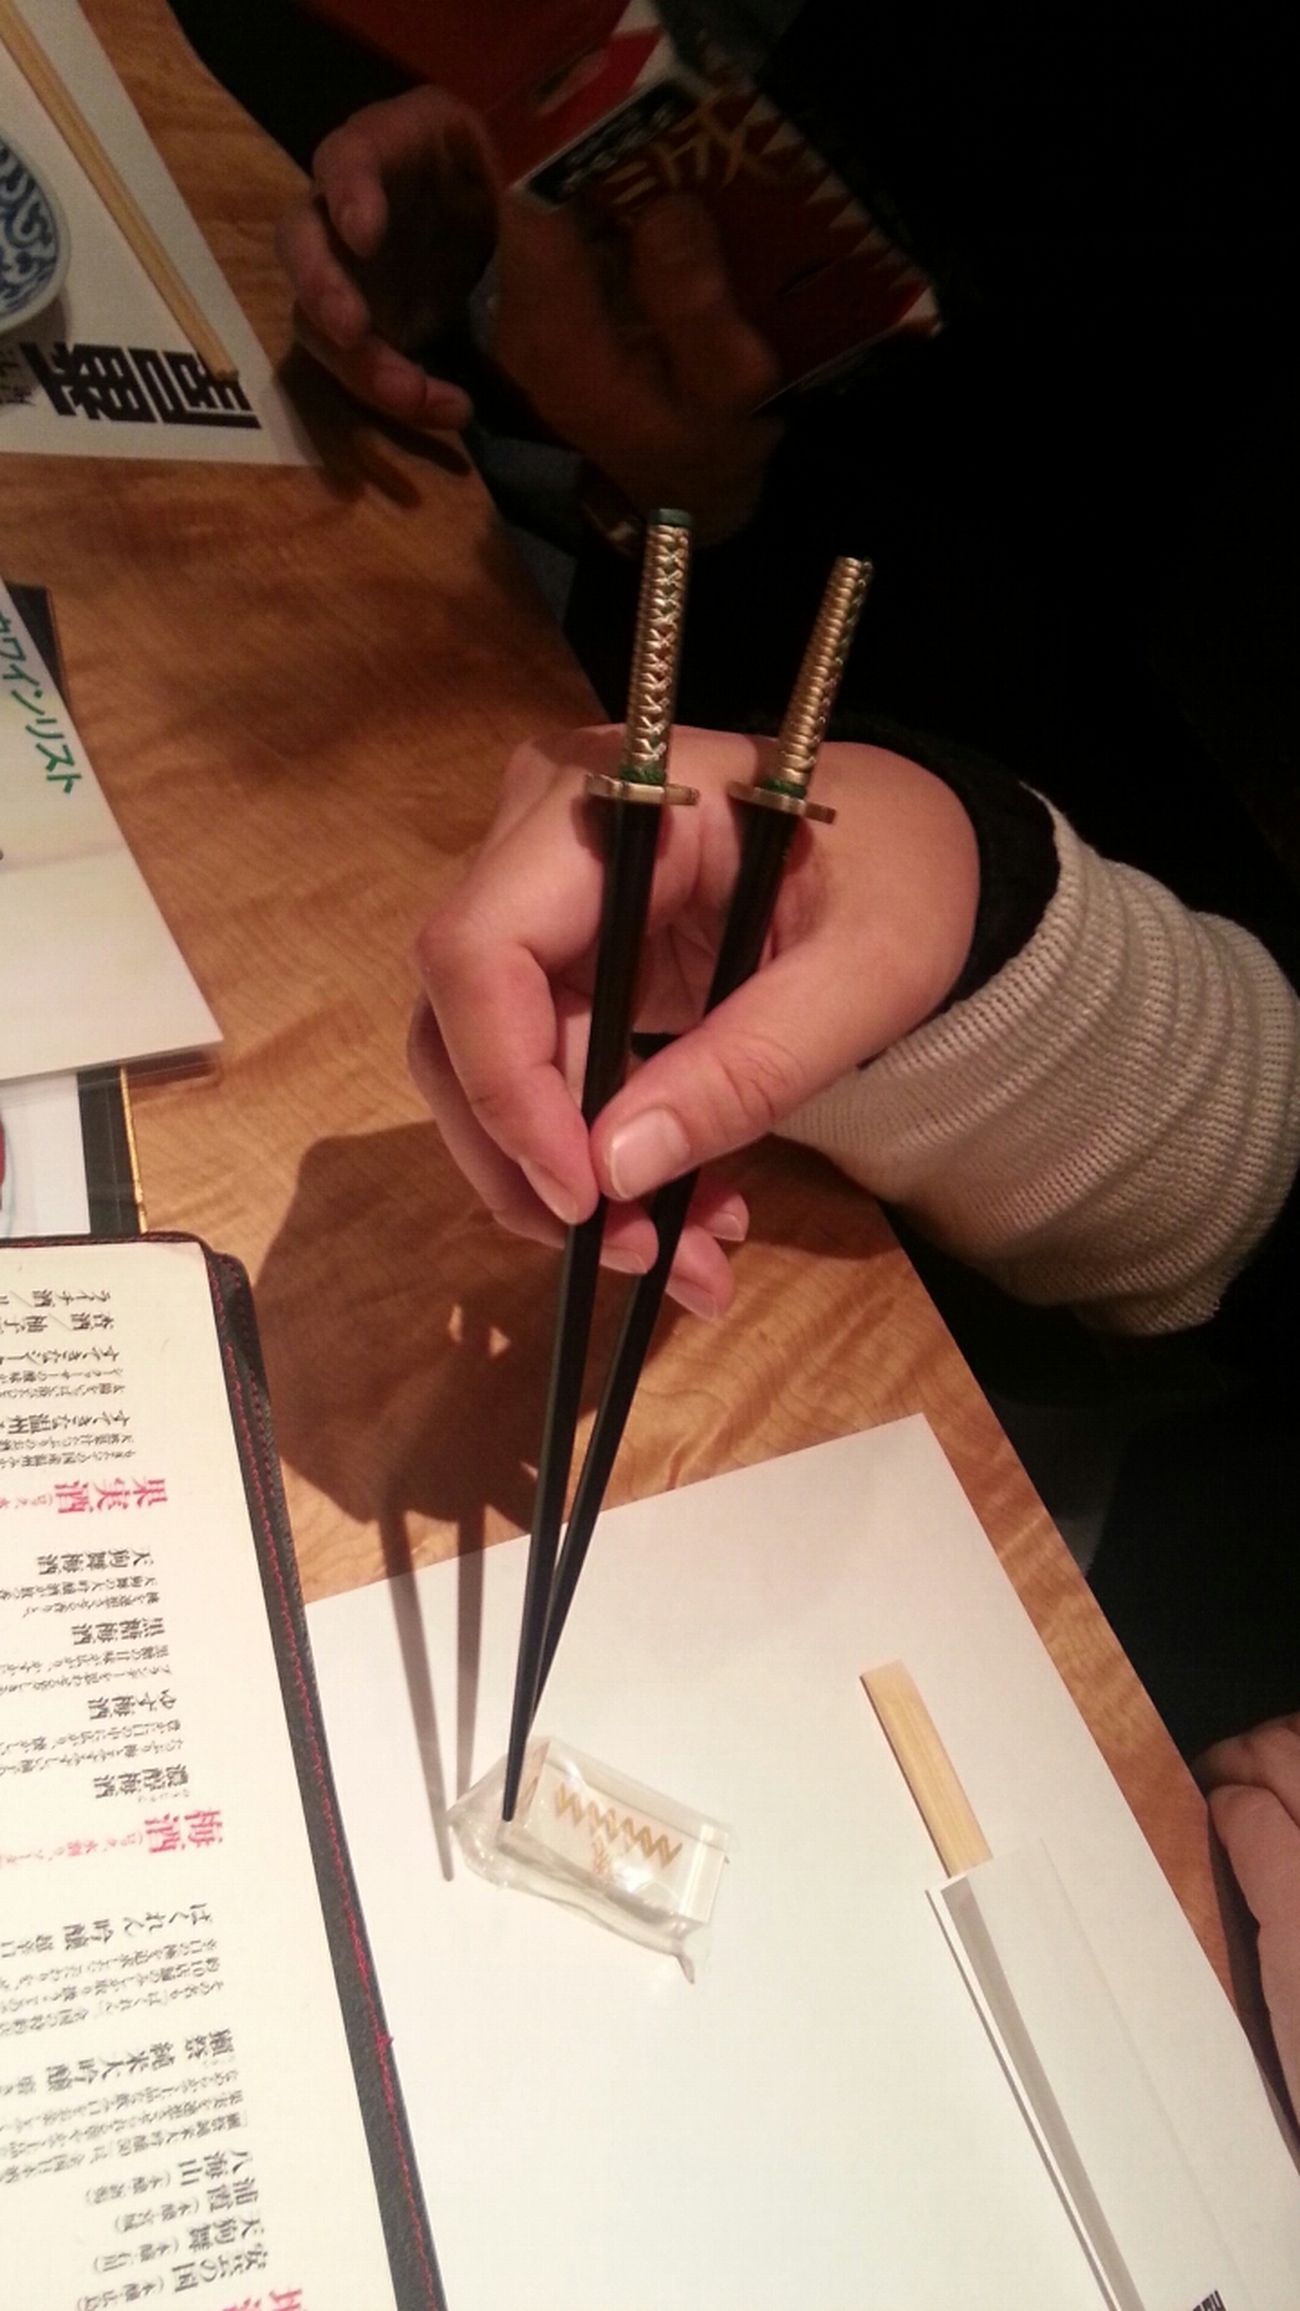 sword chopsticks Shinsengumi Souji Okita Chopsticks Sword Shinsengumi Souji Okita